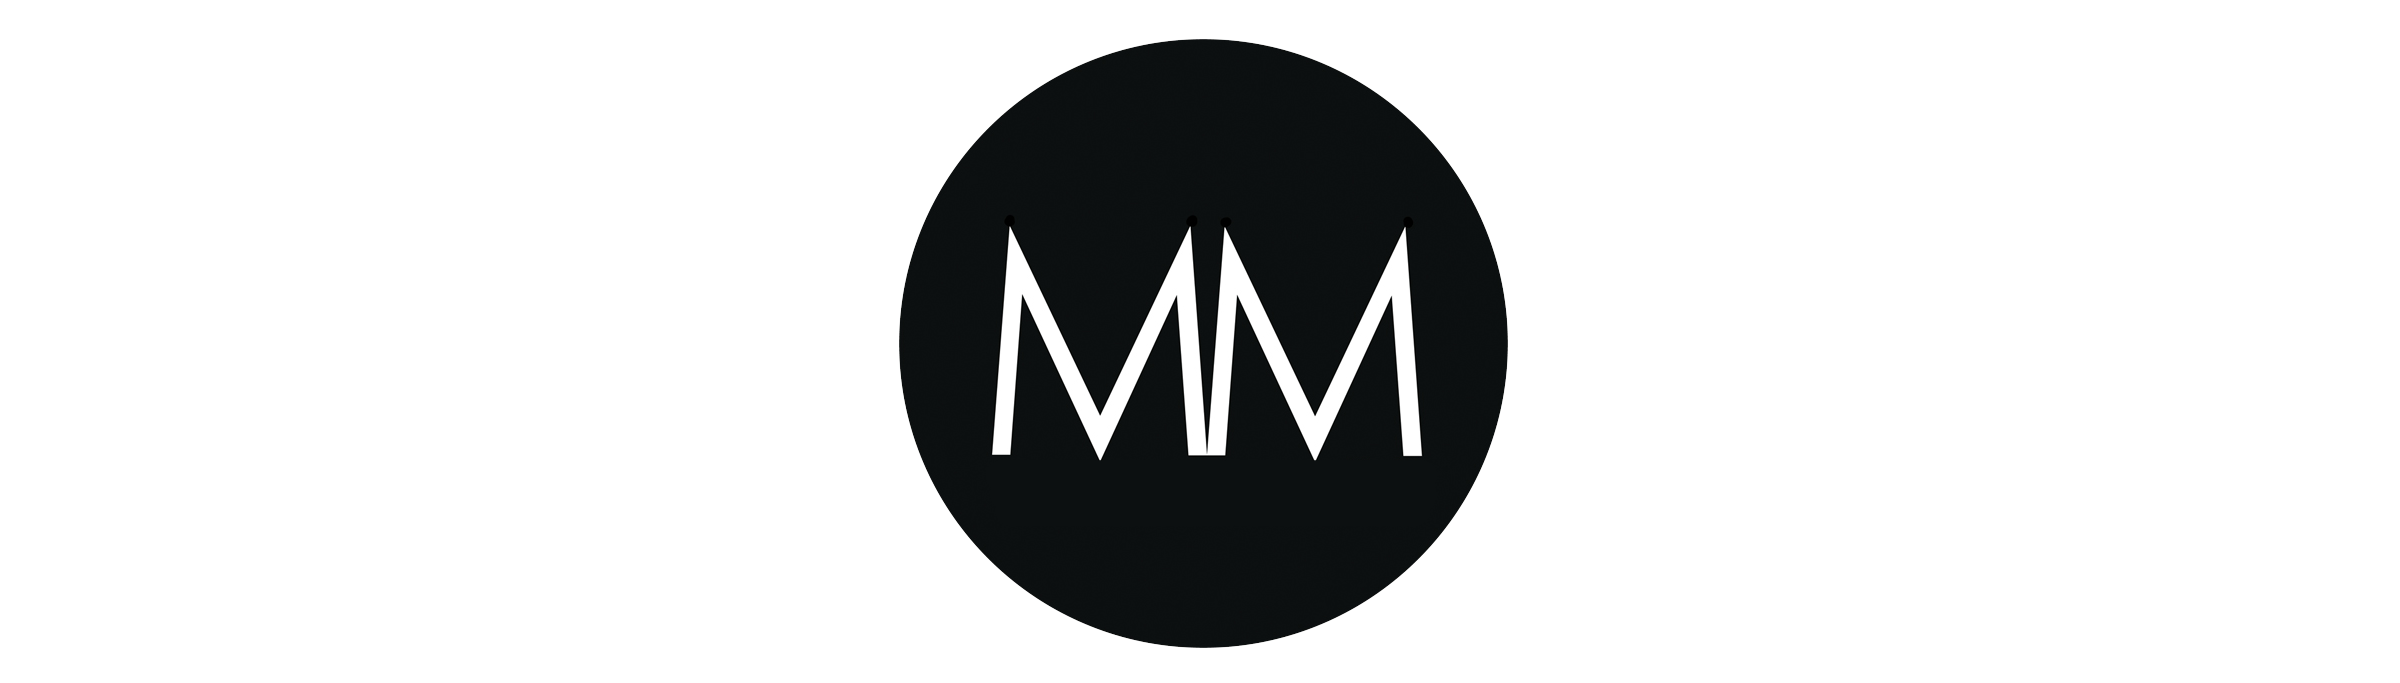 MM Banner Icon.png